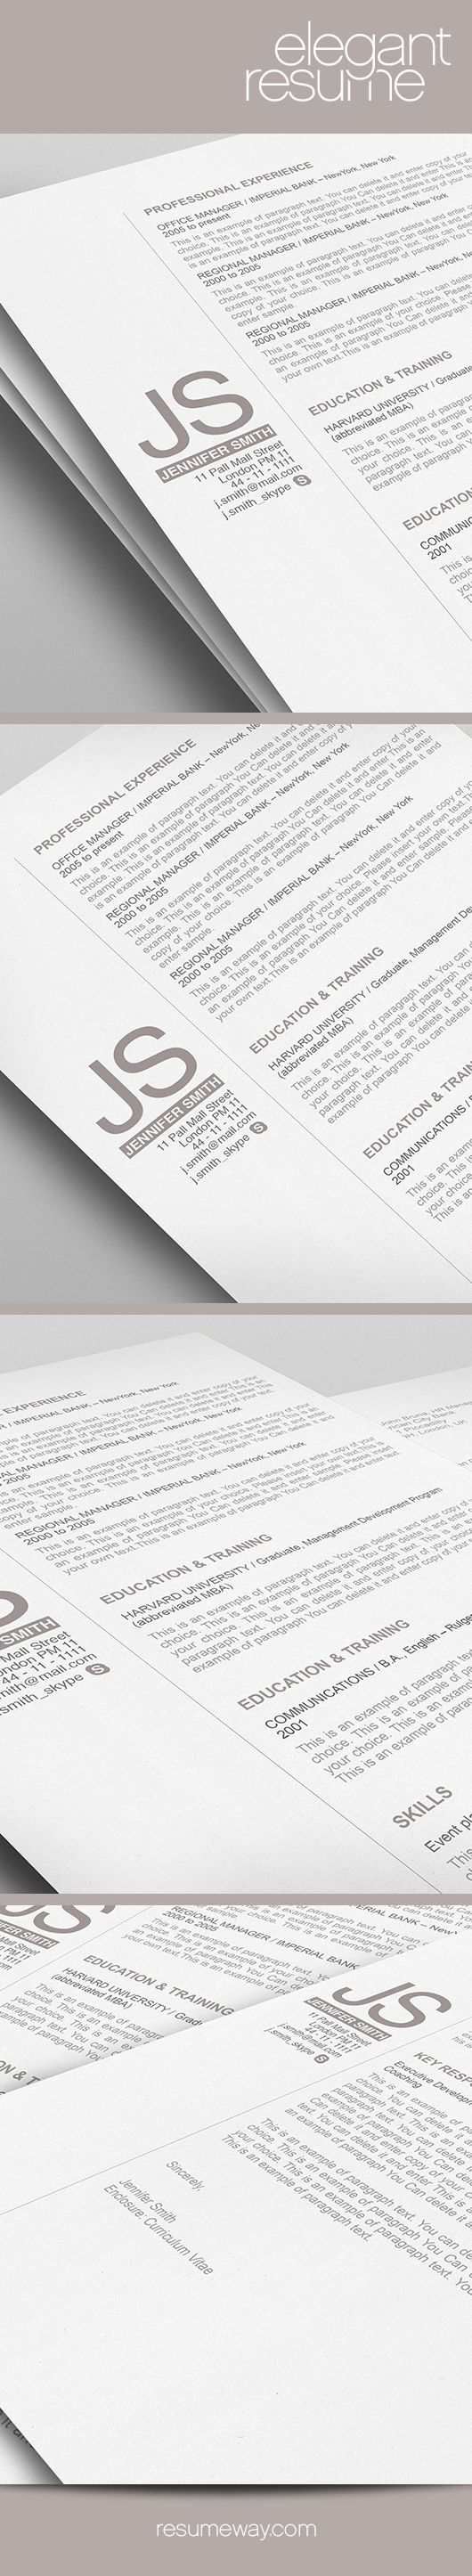 elegant resume template 110530 premium line of resume cover living a beautiful life elegant resume template 110540 premium line of resume cover letter templates easy edit ms word apple pages resume